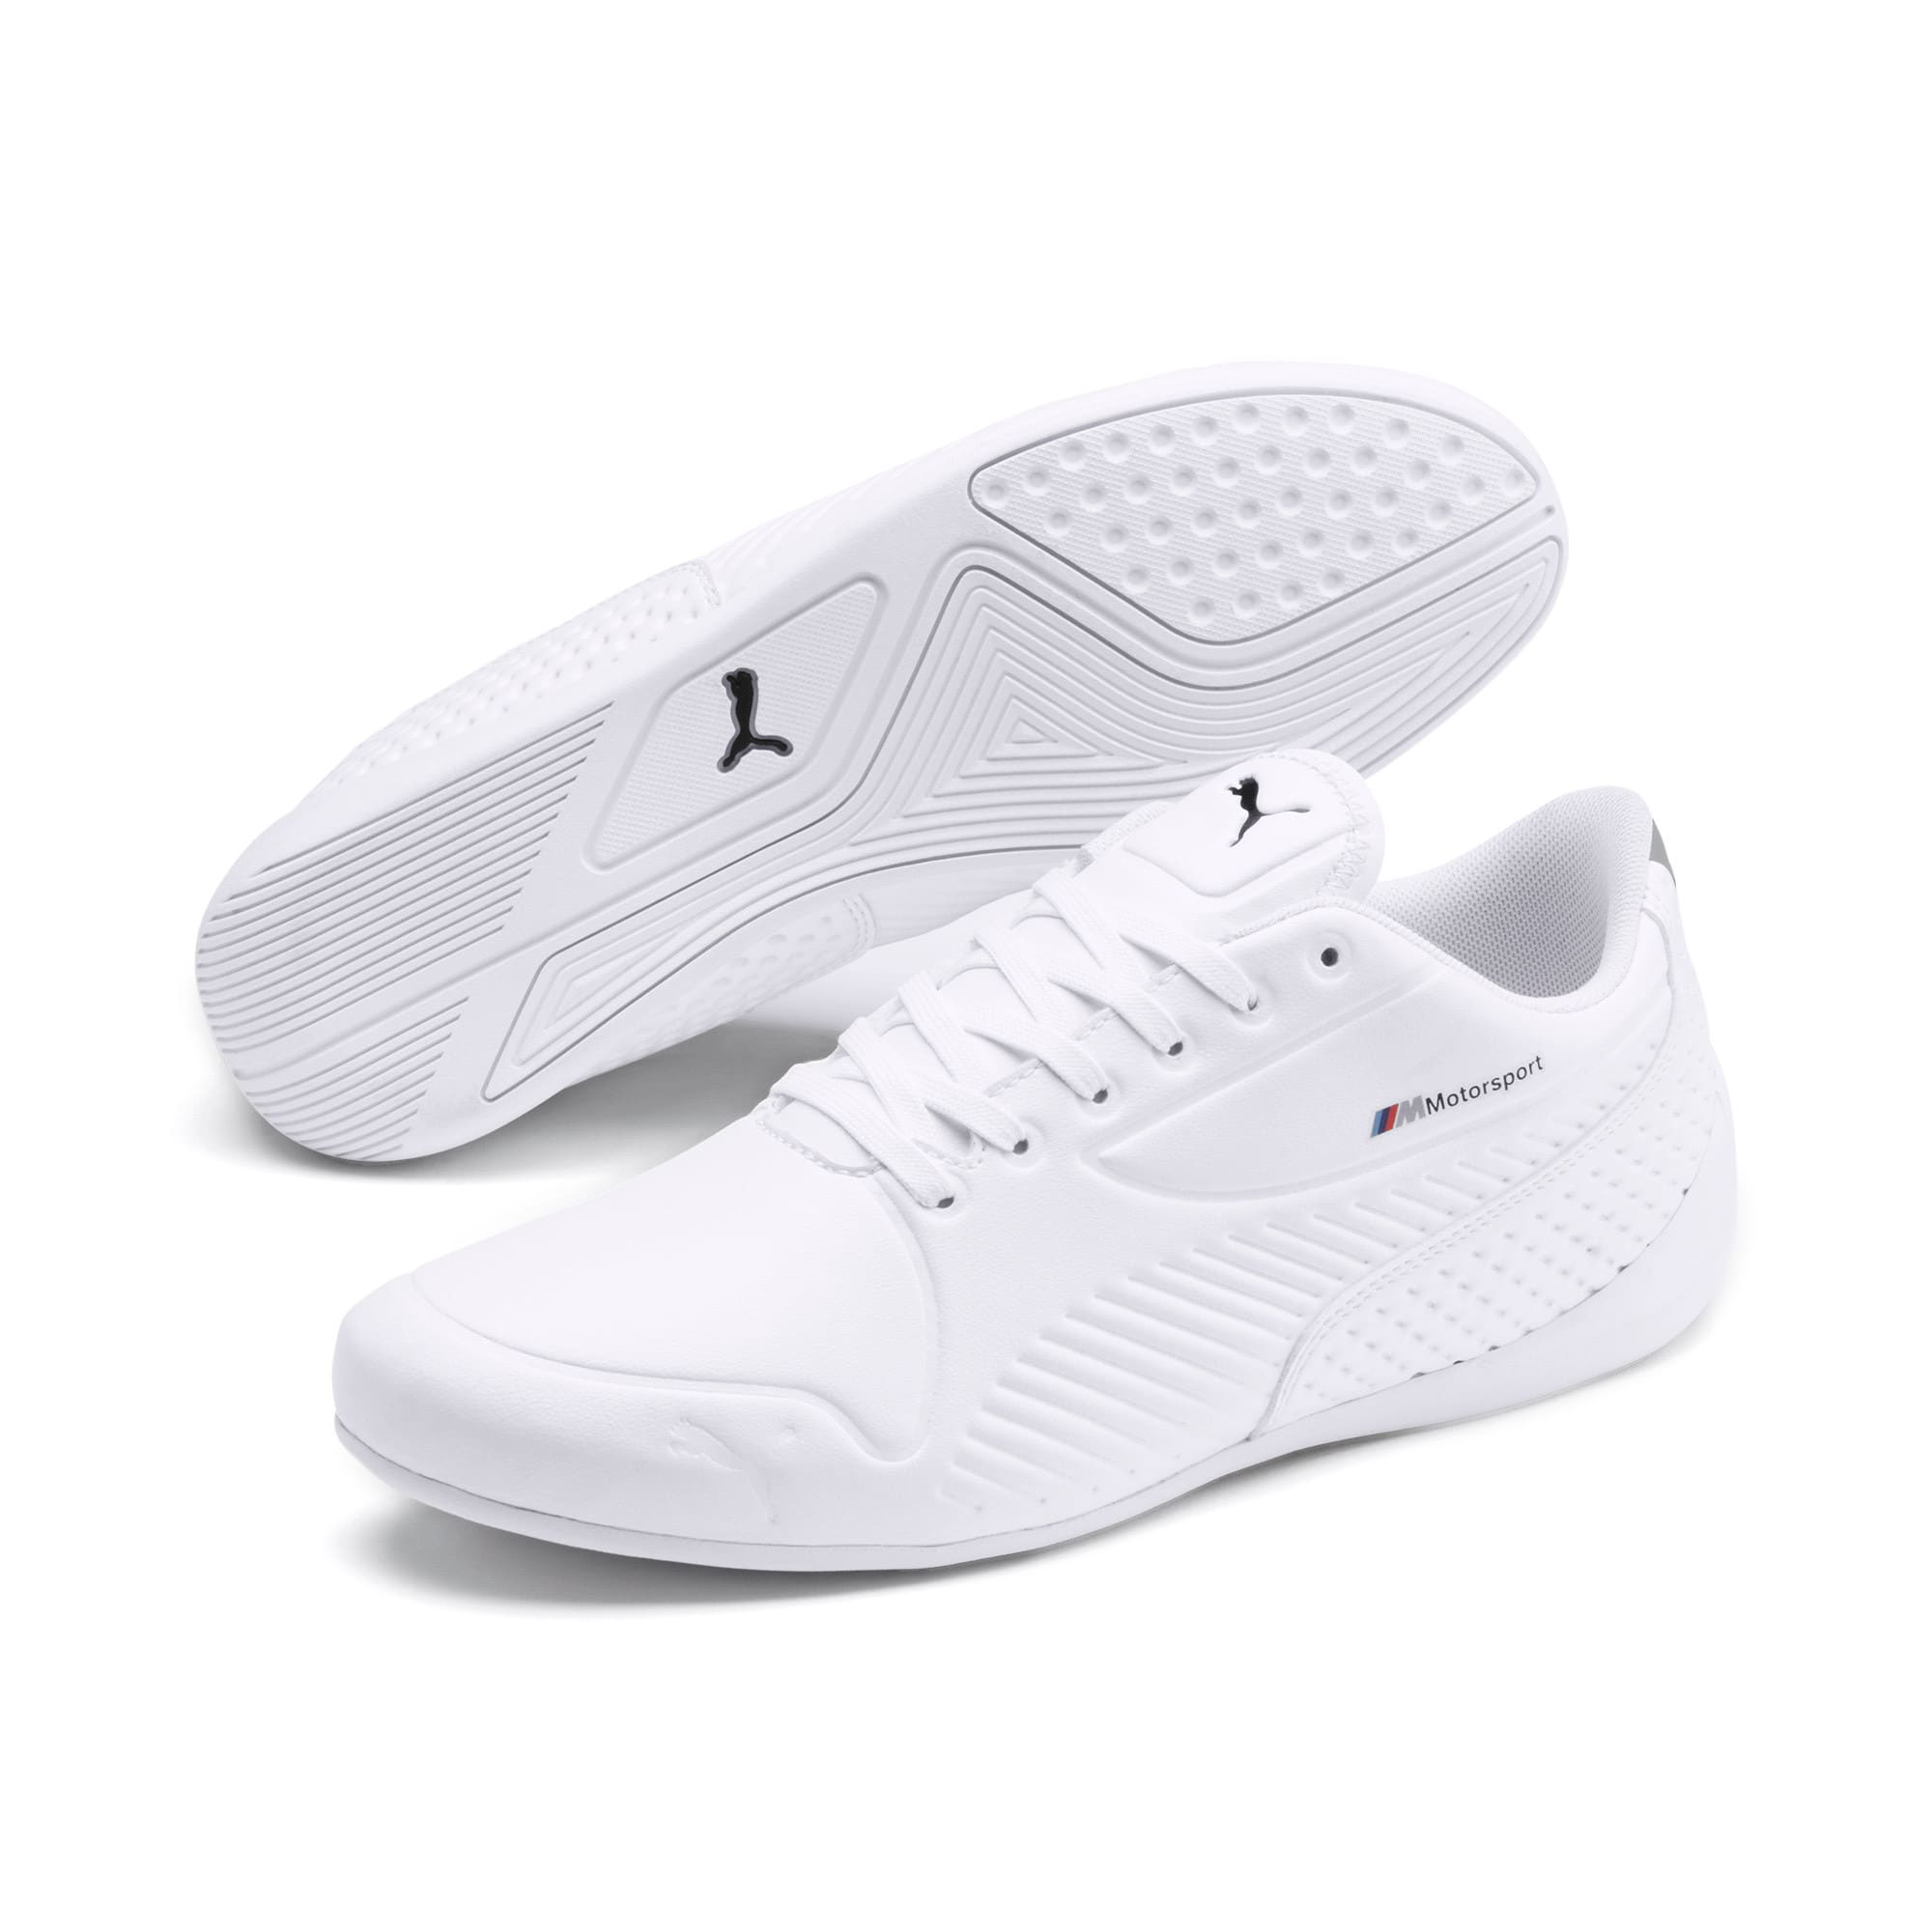 Thumbnail 3 of BMW M Motorsport Drift Cat 7S Ultra Shoes, Puma White-Puma Black, medium